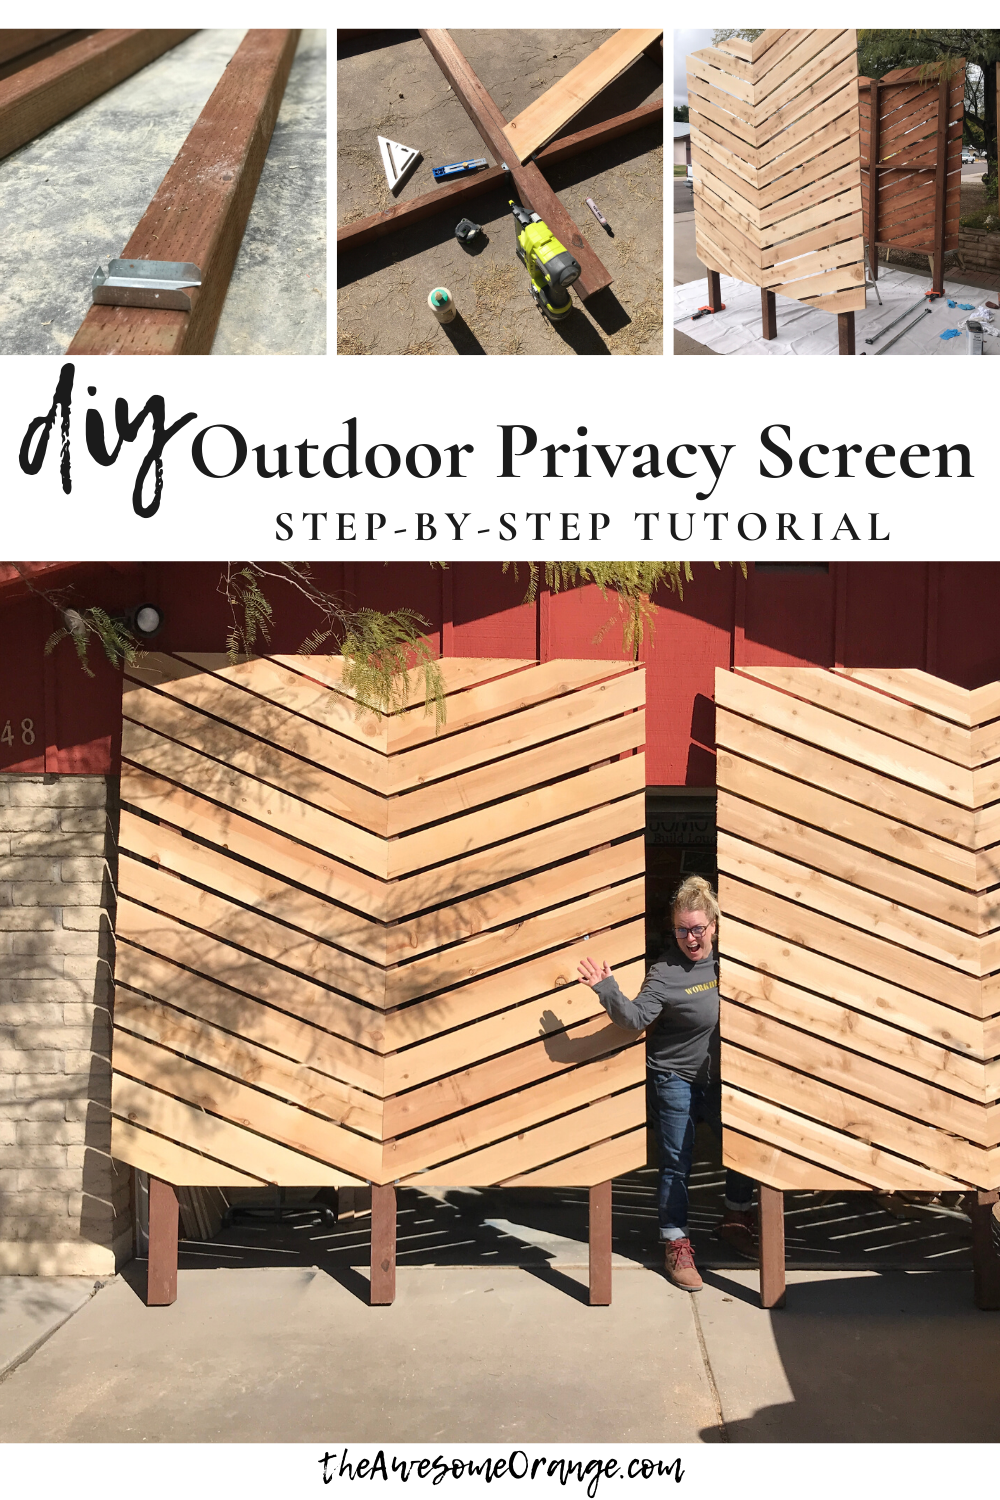 Step-by-step tutorial with printable plans to help you build your own Outdoor Privacy Screens! #diy #outdoor #privacyscreen #chevron #lanscapedecor